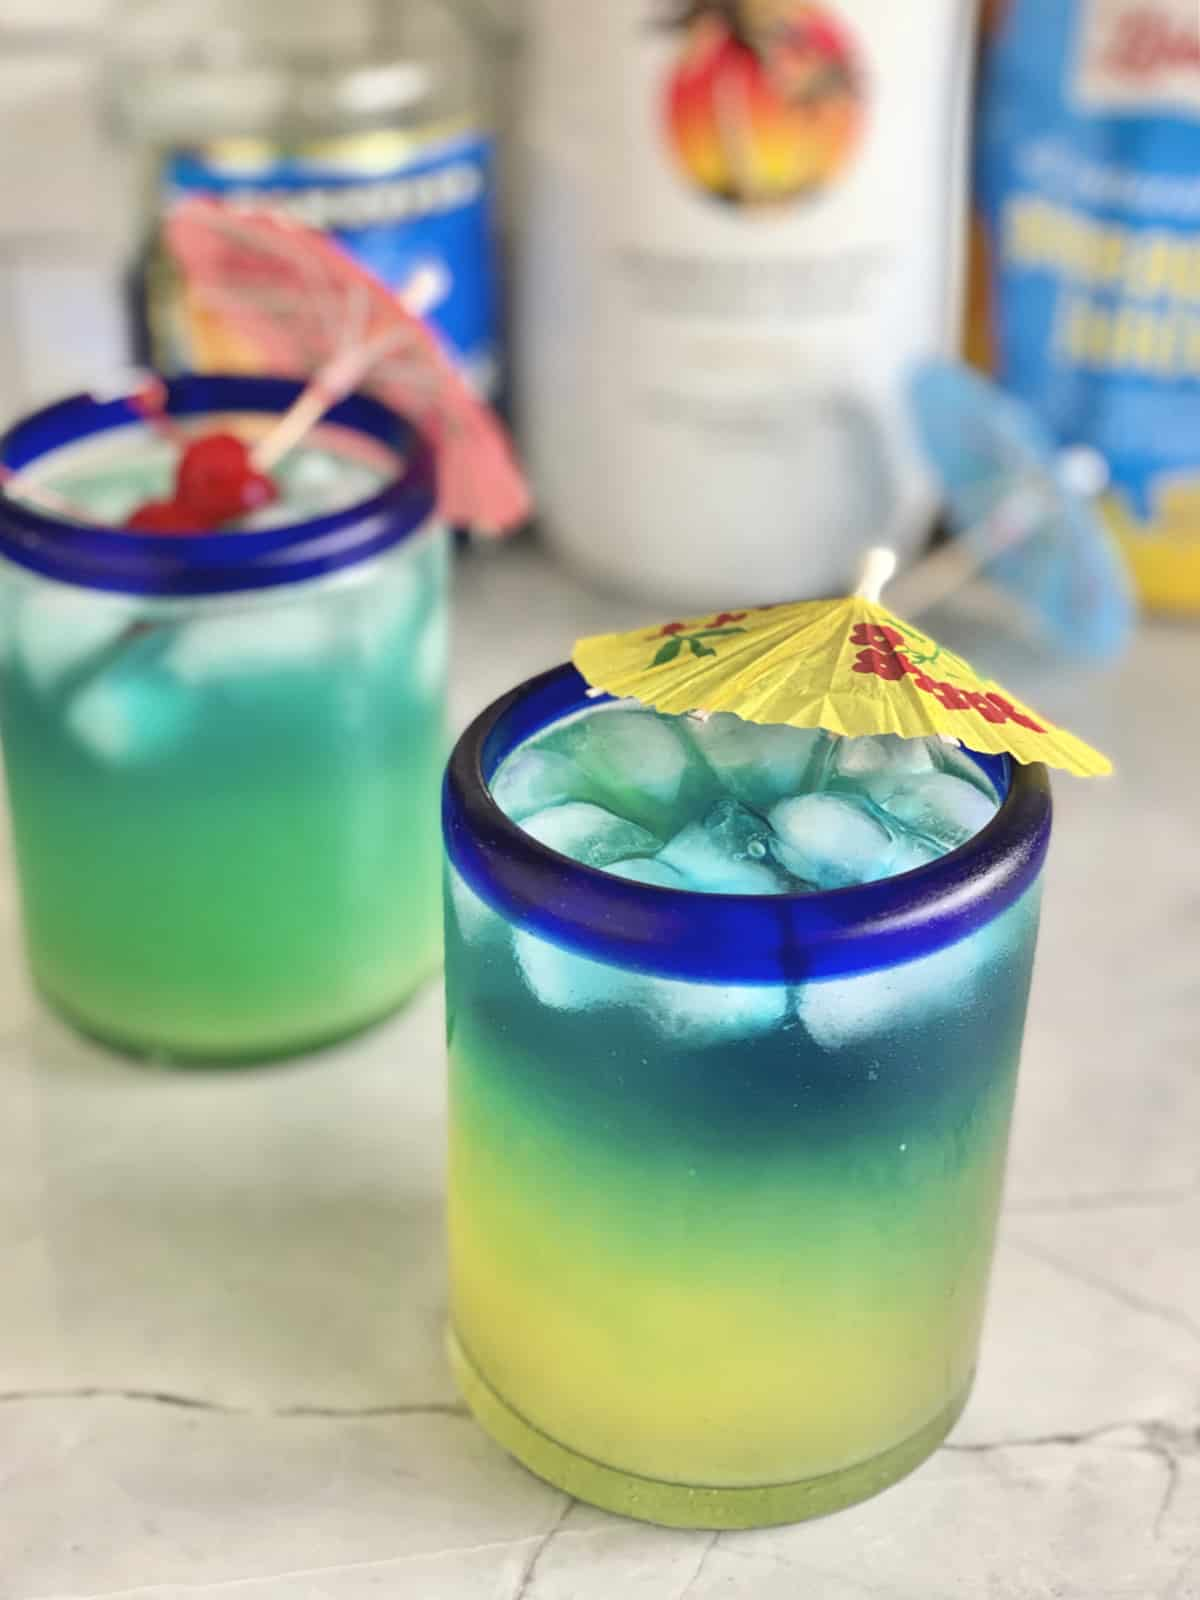 Two blue drinks with paper umbrellas and cherries in the drink.